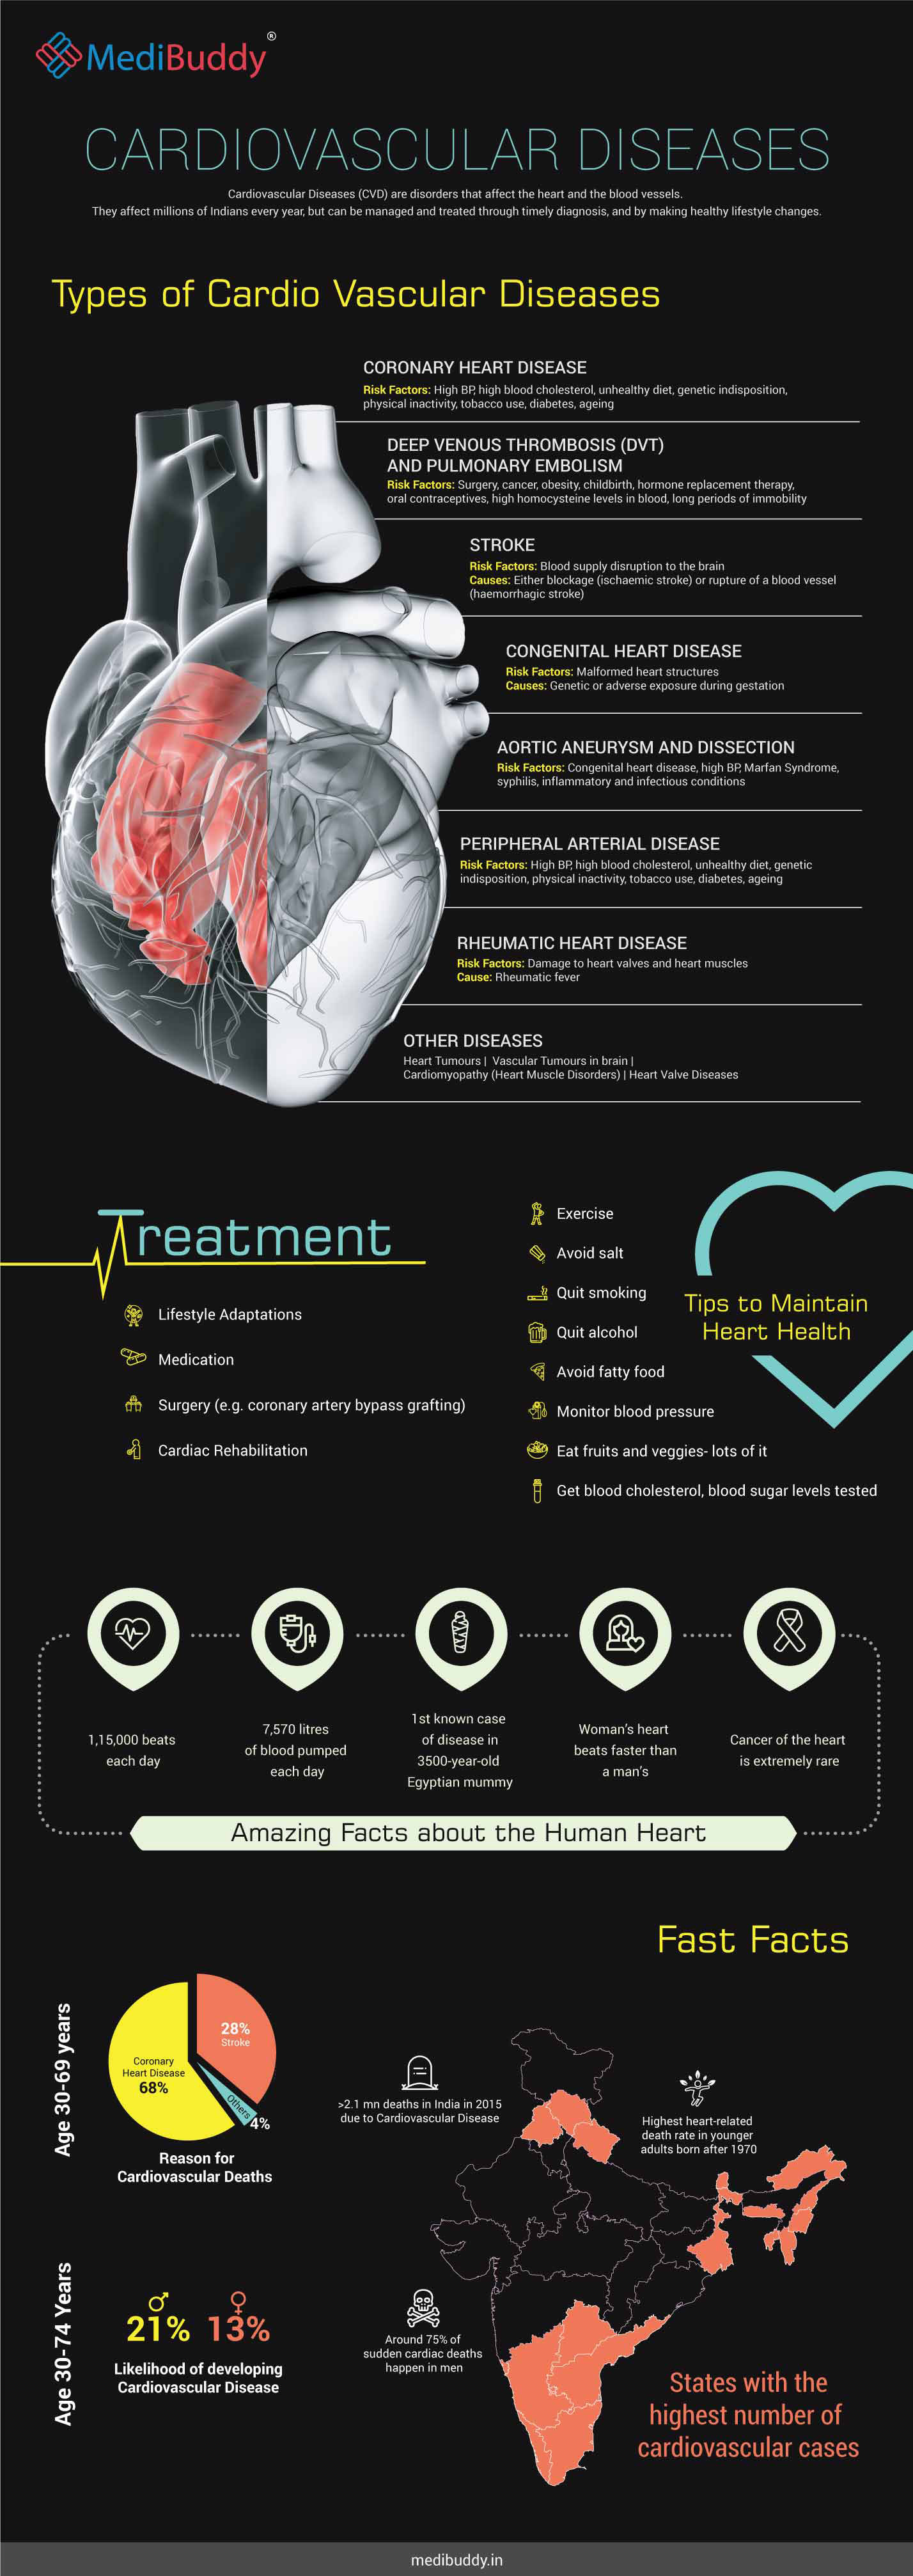 Heart disease, prevention and treatment